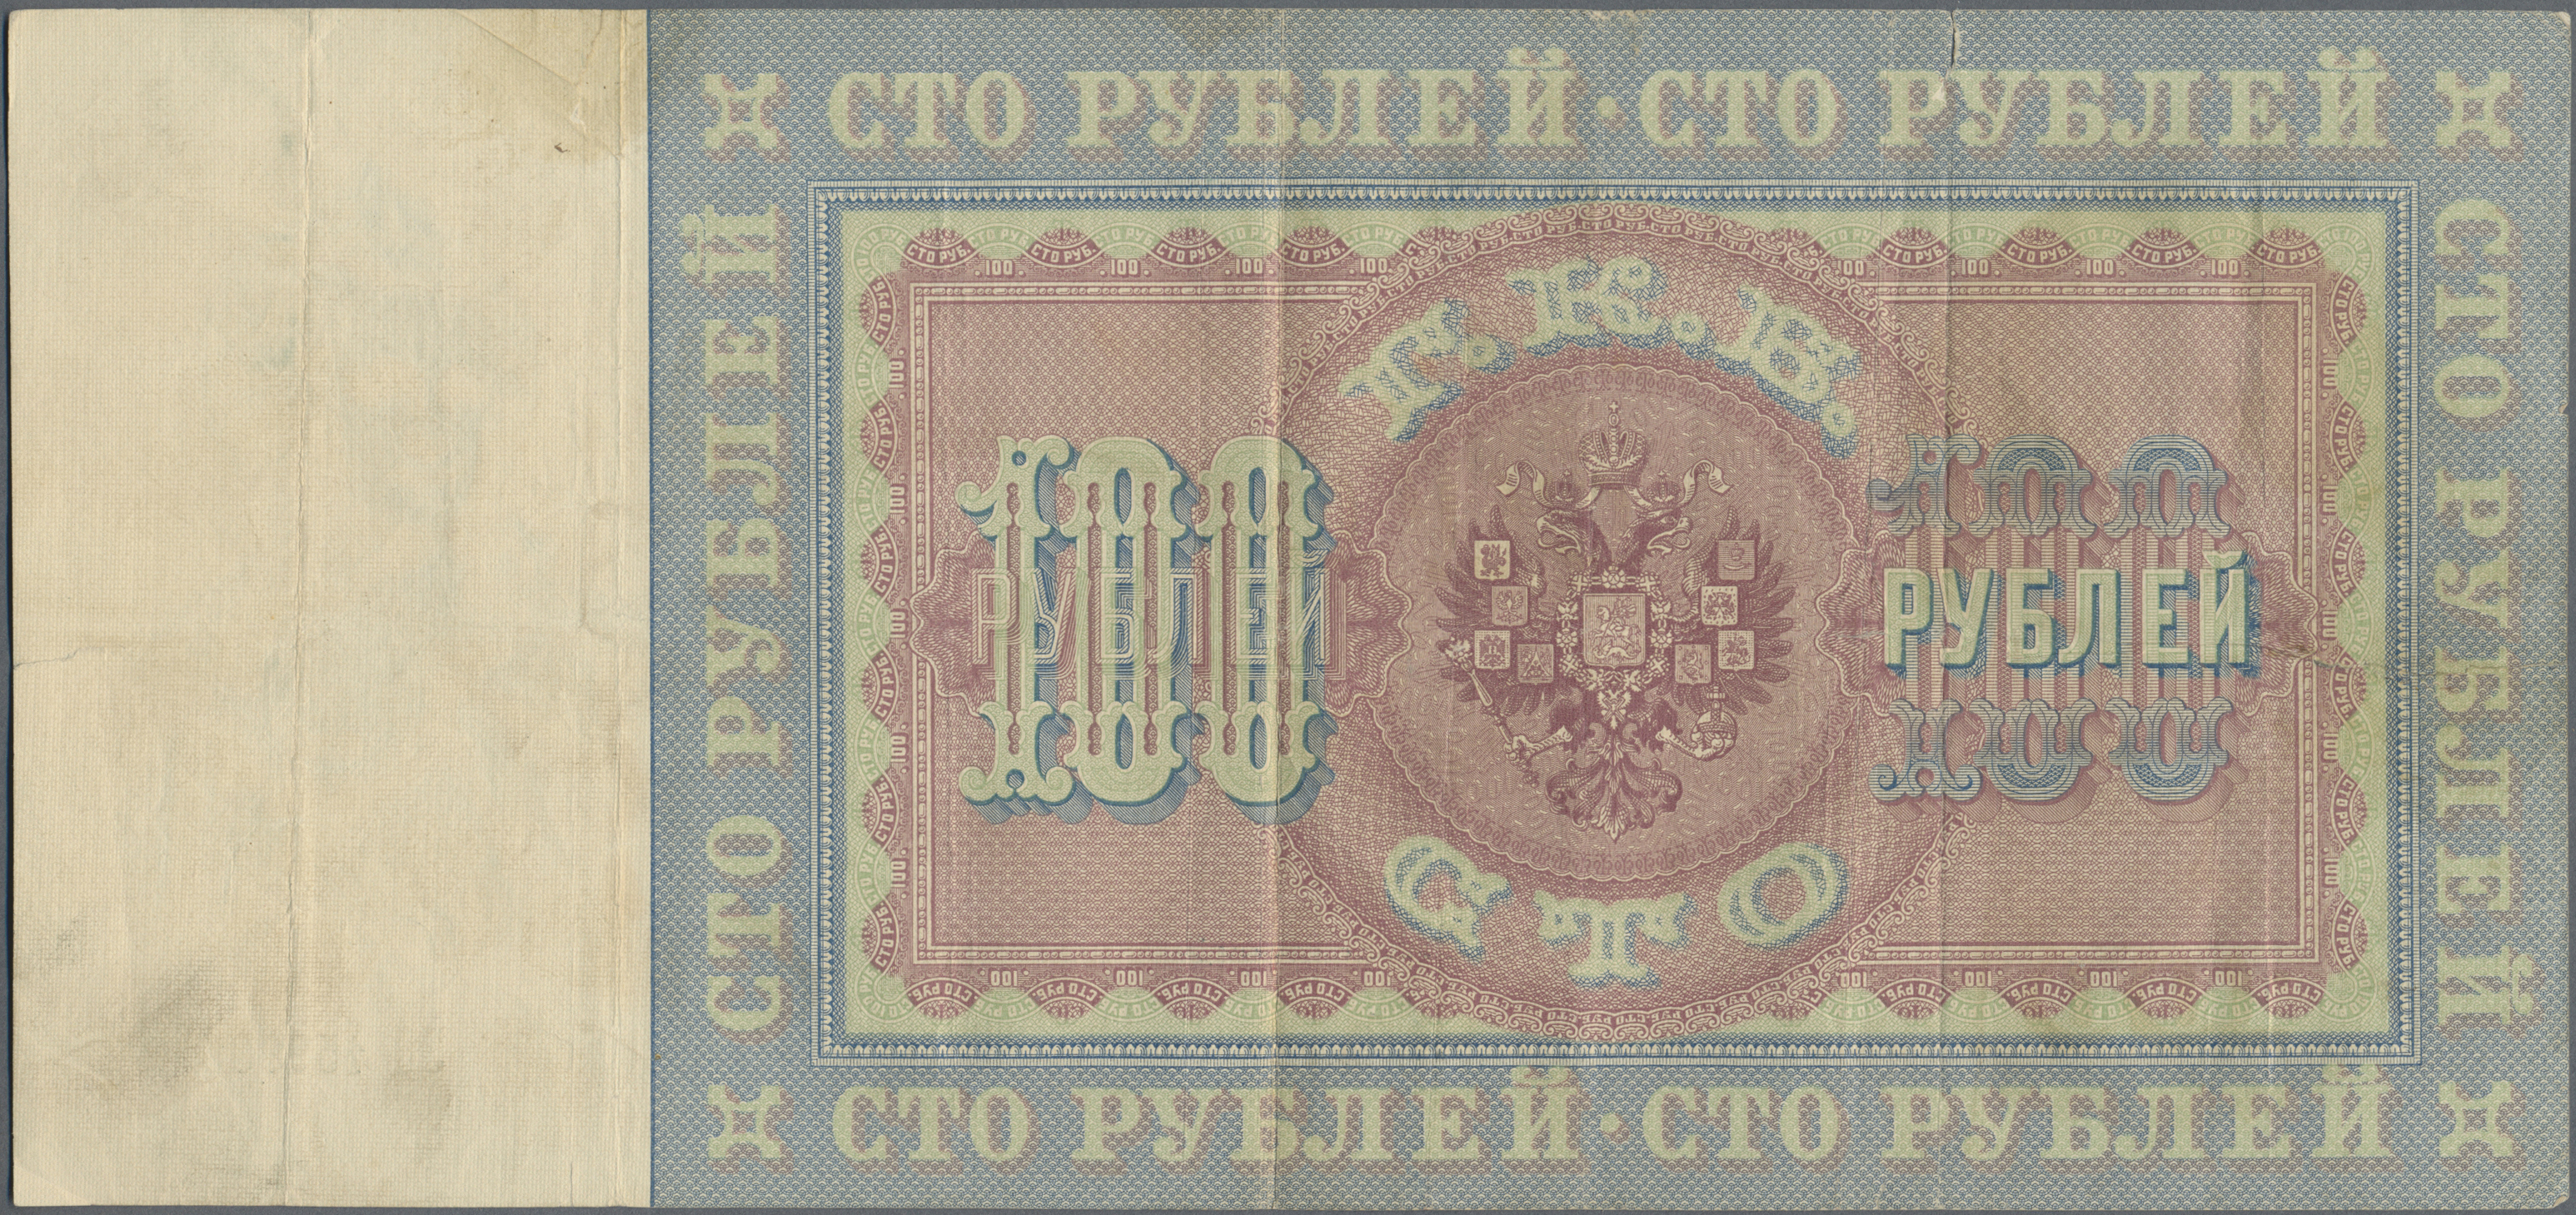 Lot 00625 - Russia / Russland | Banknoten  -  Auktionshaus Christoph Gärtner GmbH & Co. KG Sale #48 The Banknotes